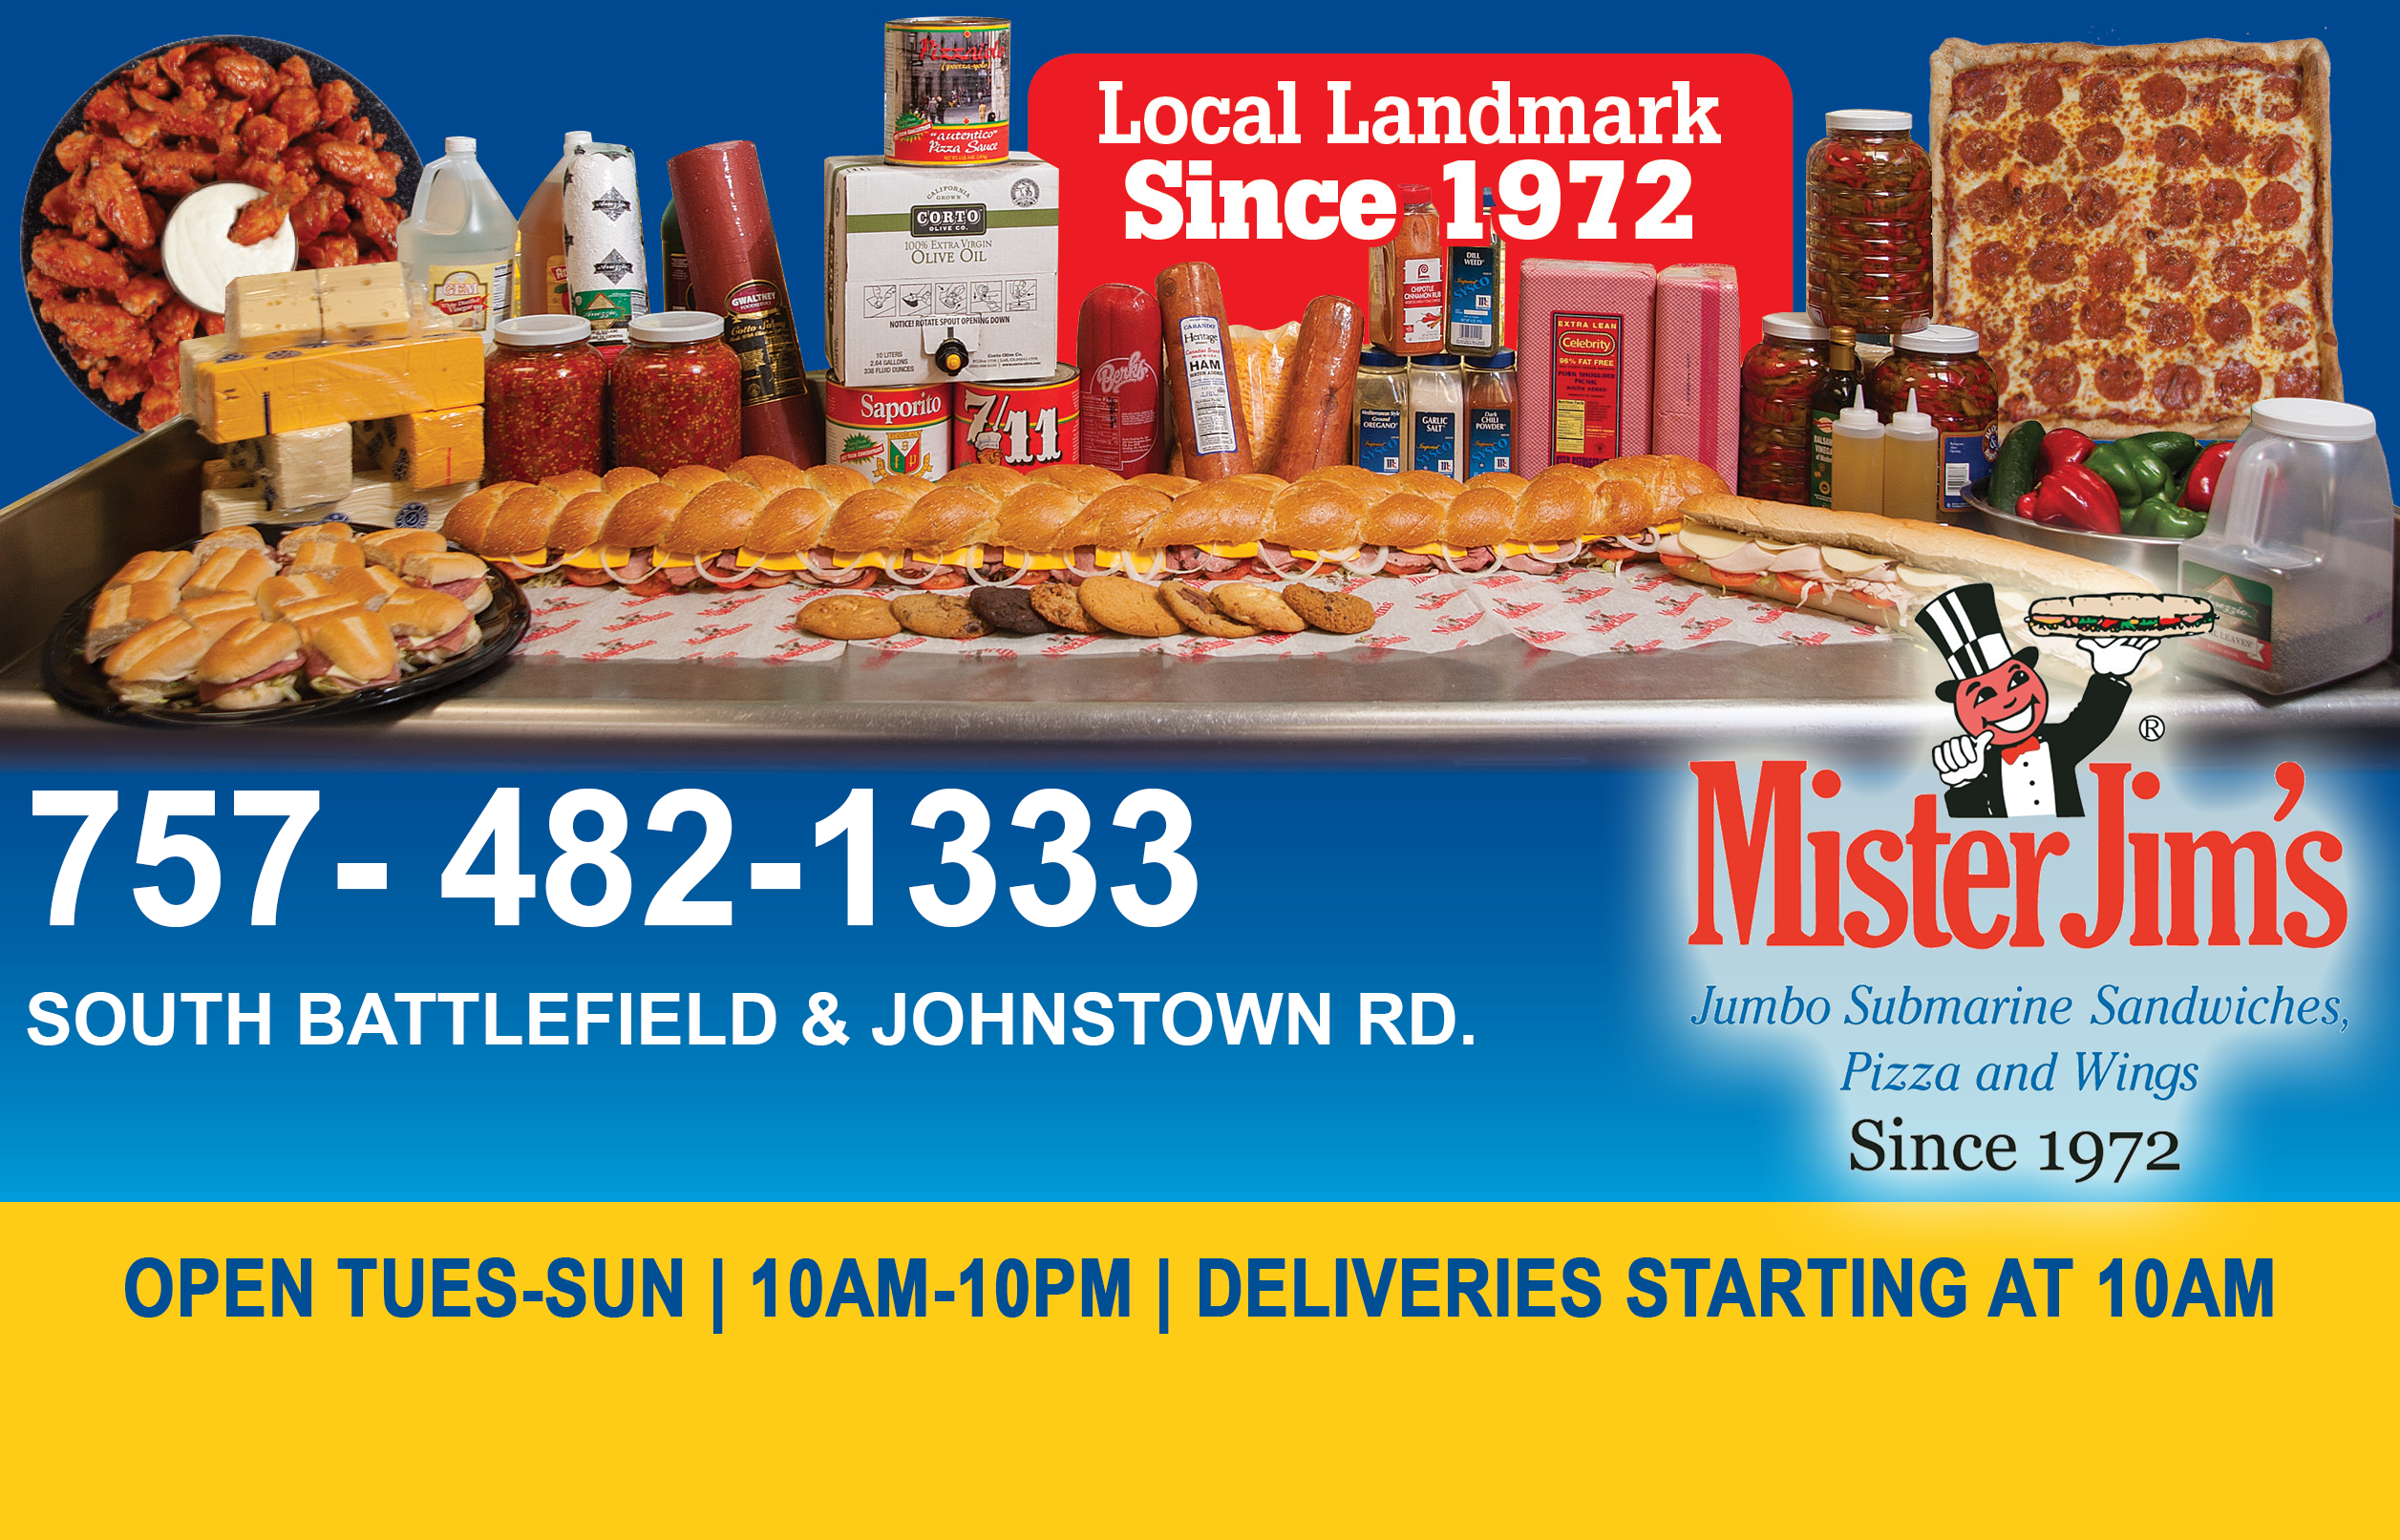 local landmark since 1972. 757-482-1333 south battlefield and johnstown rd. mister jim's jumbo submarine sandwiches, pizza and wings since 1972. open tues-sun 10am-10pm deliveries starting at 10am